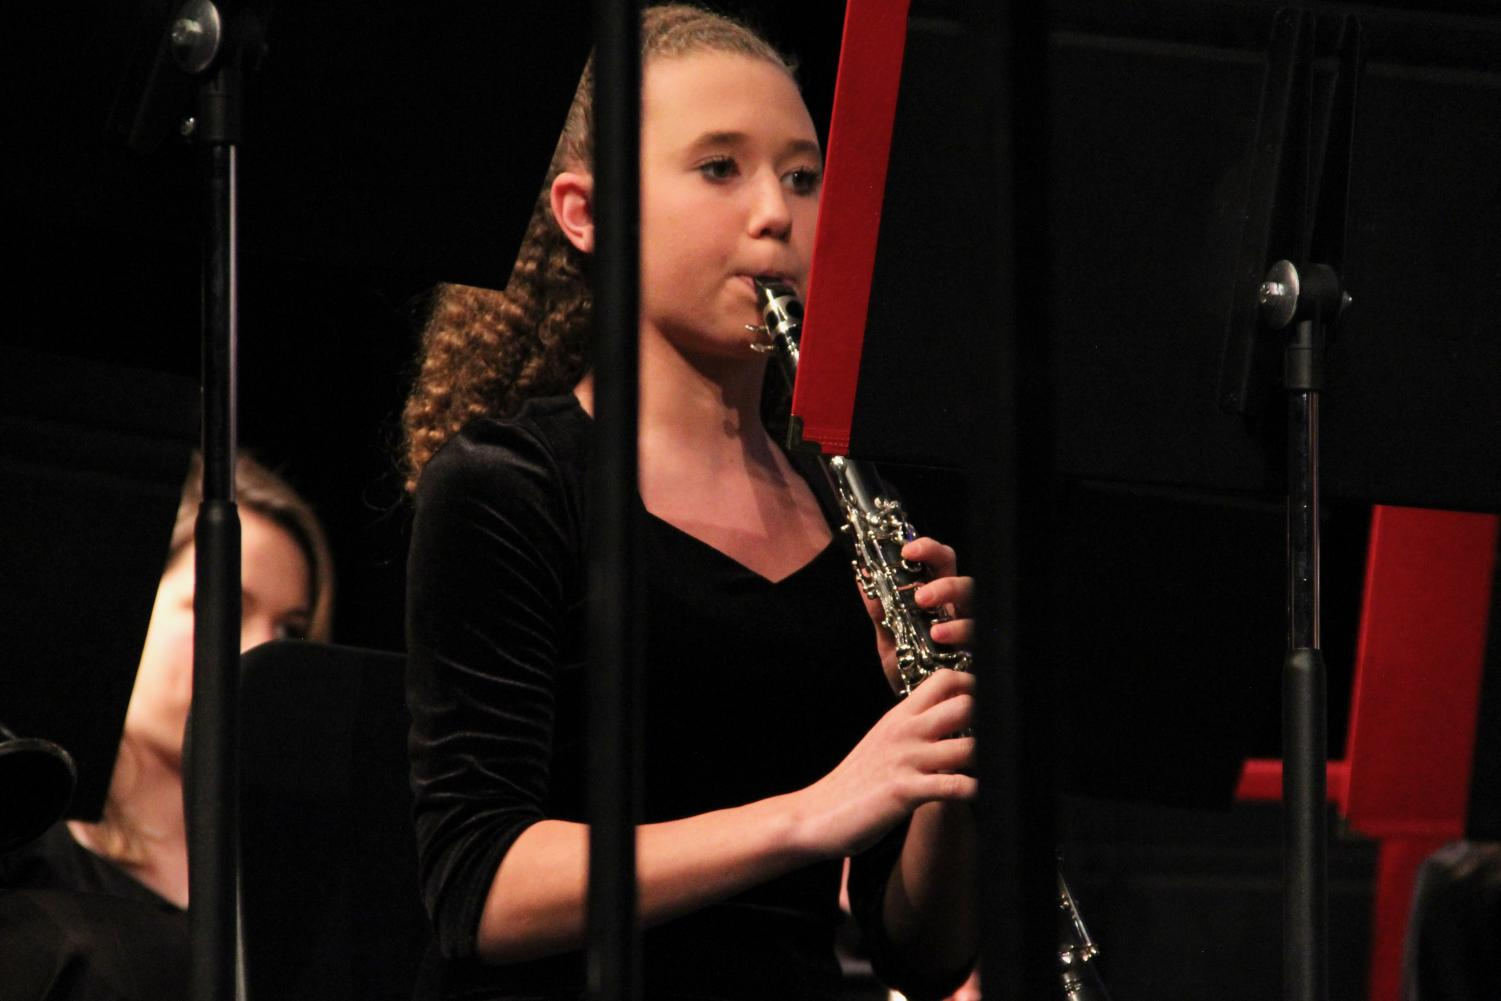 Isabella+Knopfel%2C+freshman%2C+focuses+on+her+sheet+music+as+she+plays+her+instrument.